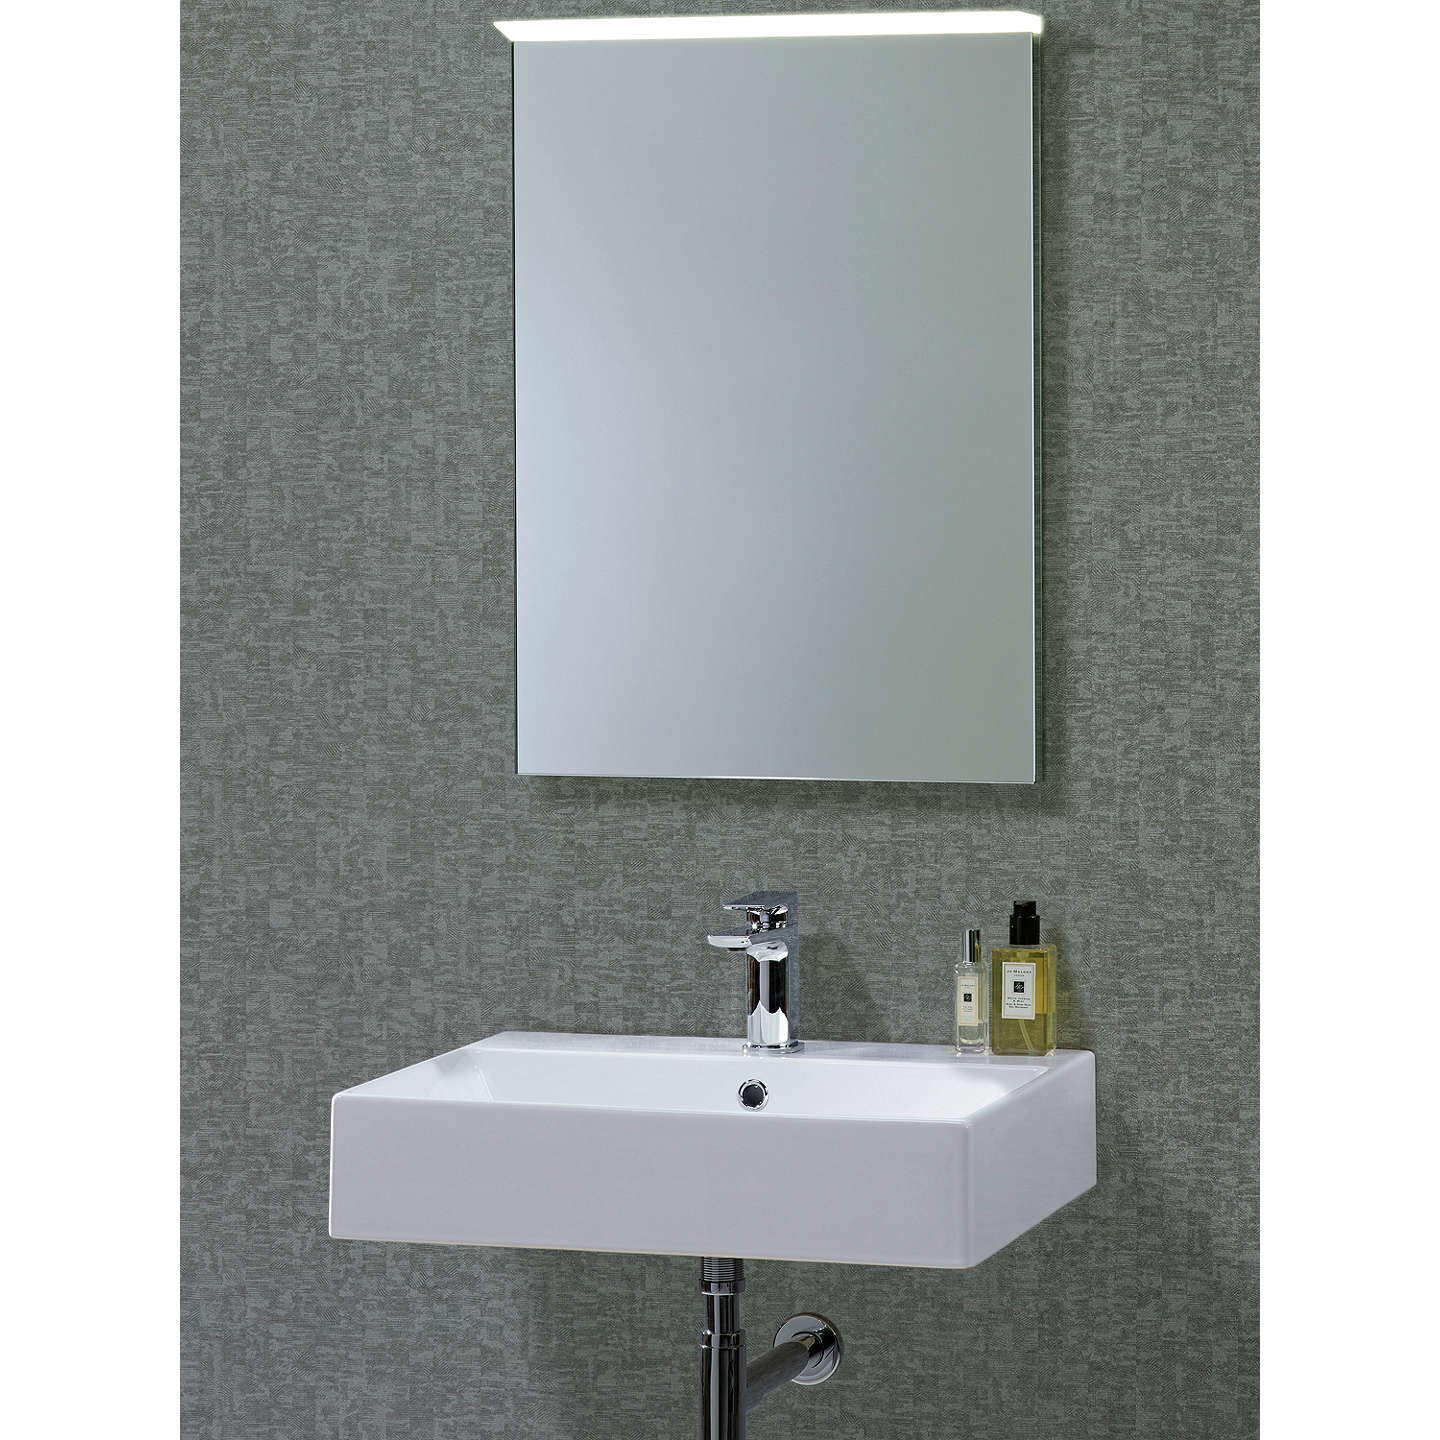 Illuminated Mirrors Bathroom: Roper Rhodes Induct Illuminated LED Bathroom Mirror At